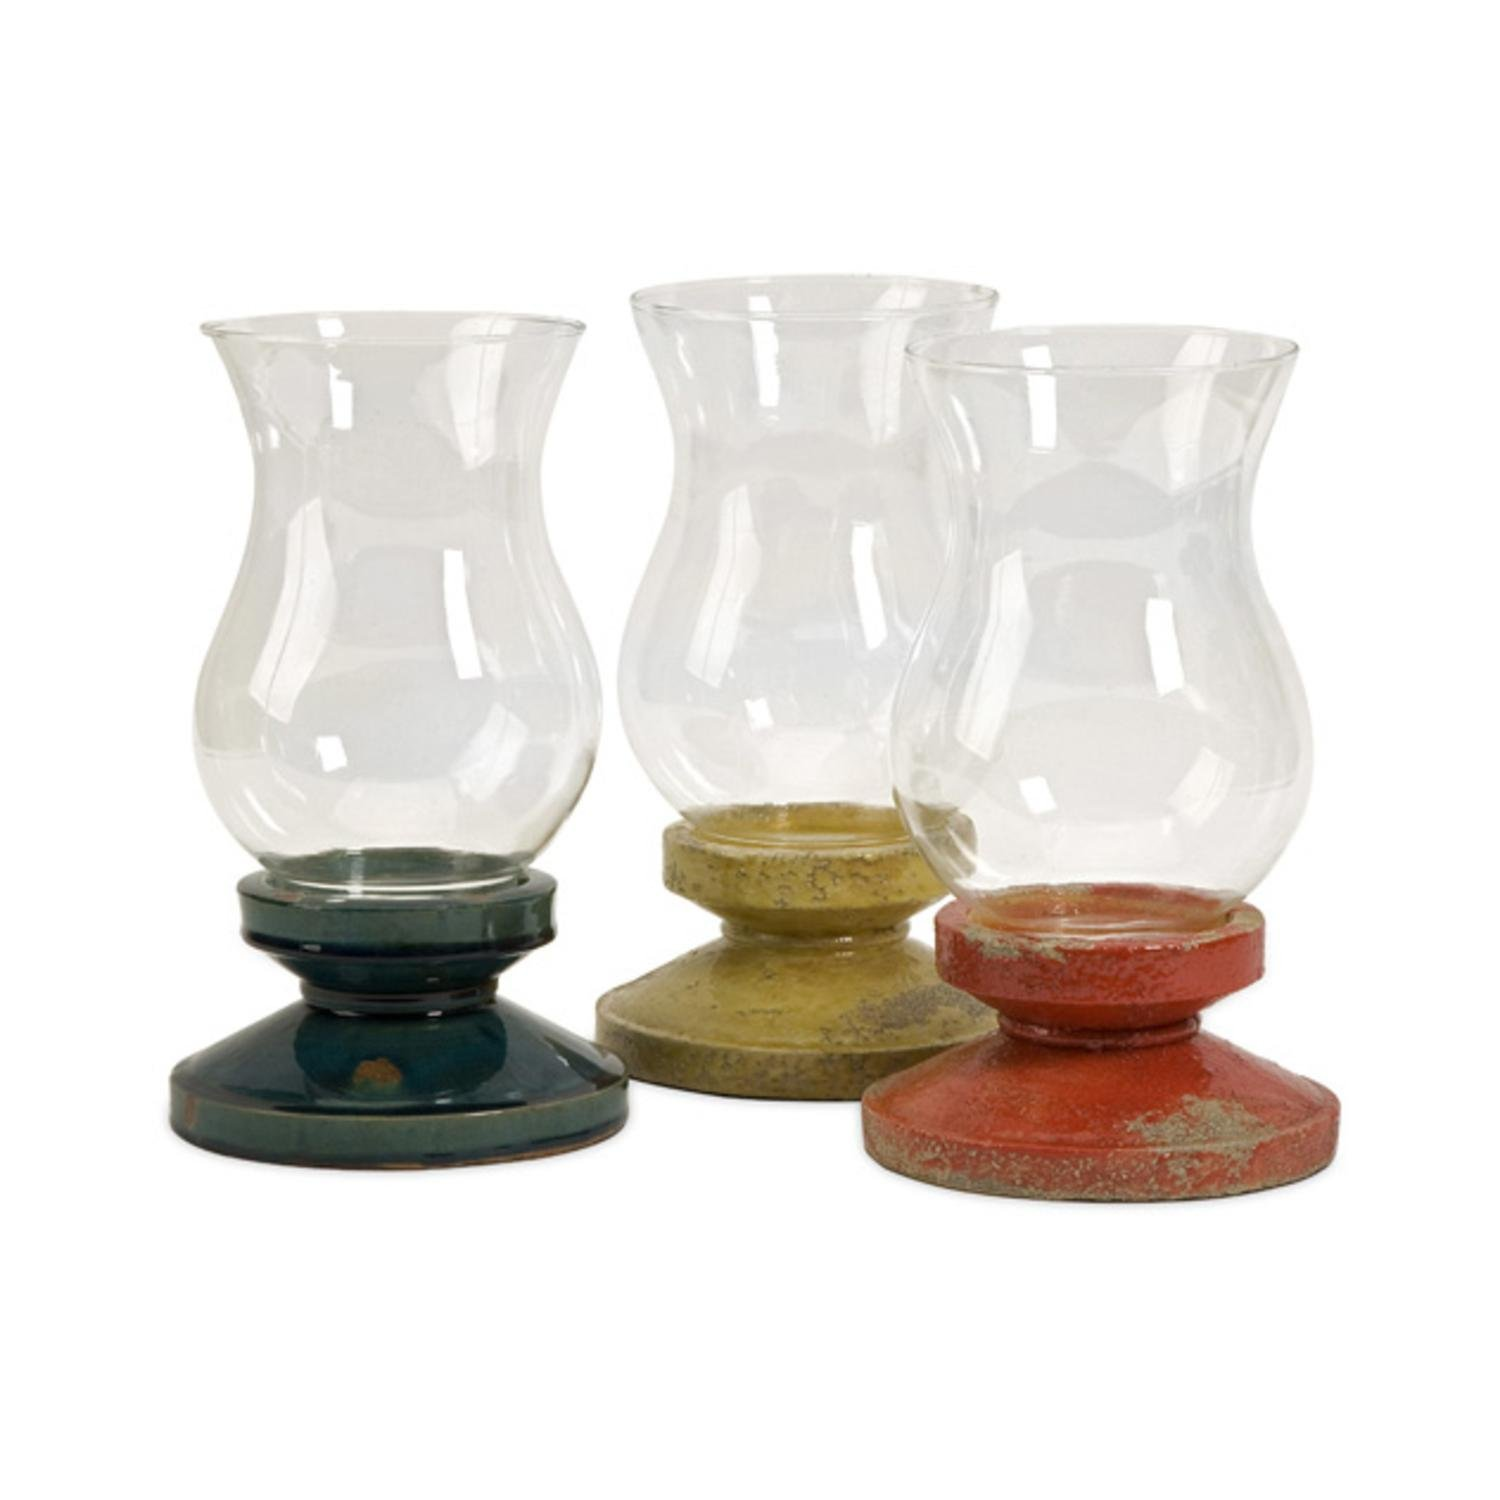 Cheap wholesale hurricane candle holders find wholesale hurricane get quotations set of 3 distressed boullia decorative glass hurricane pillar candle holders reviewsmspy